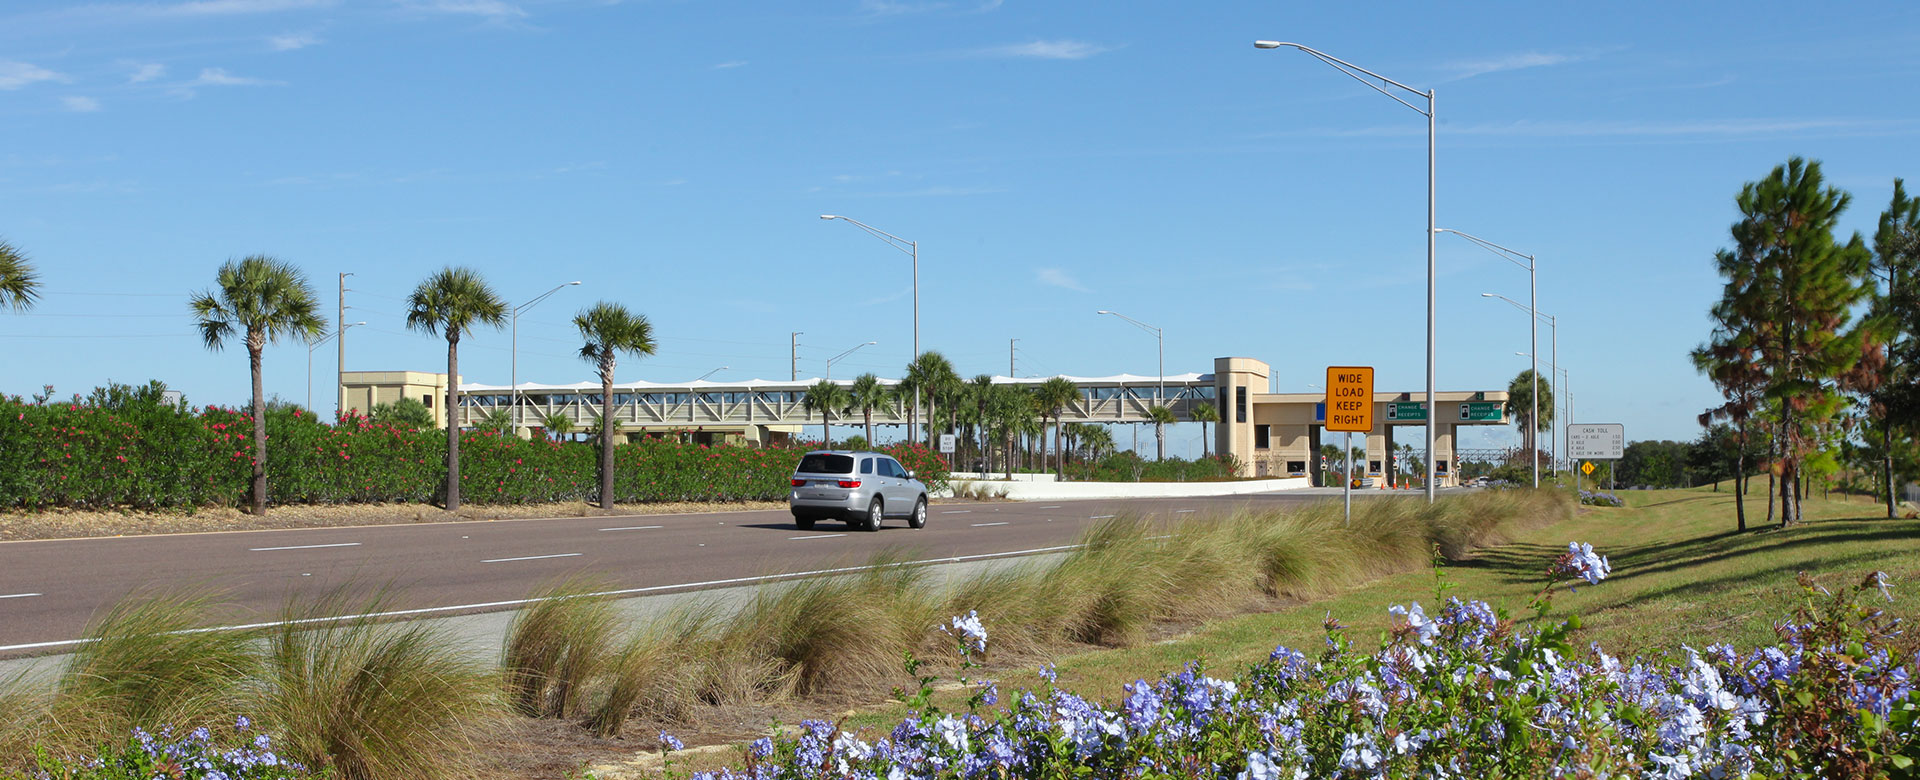 Central Florida Expressway toll road 429 toll plaza